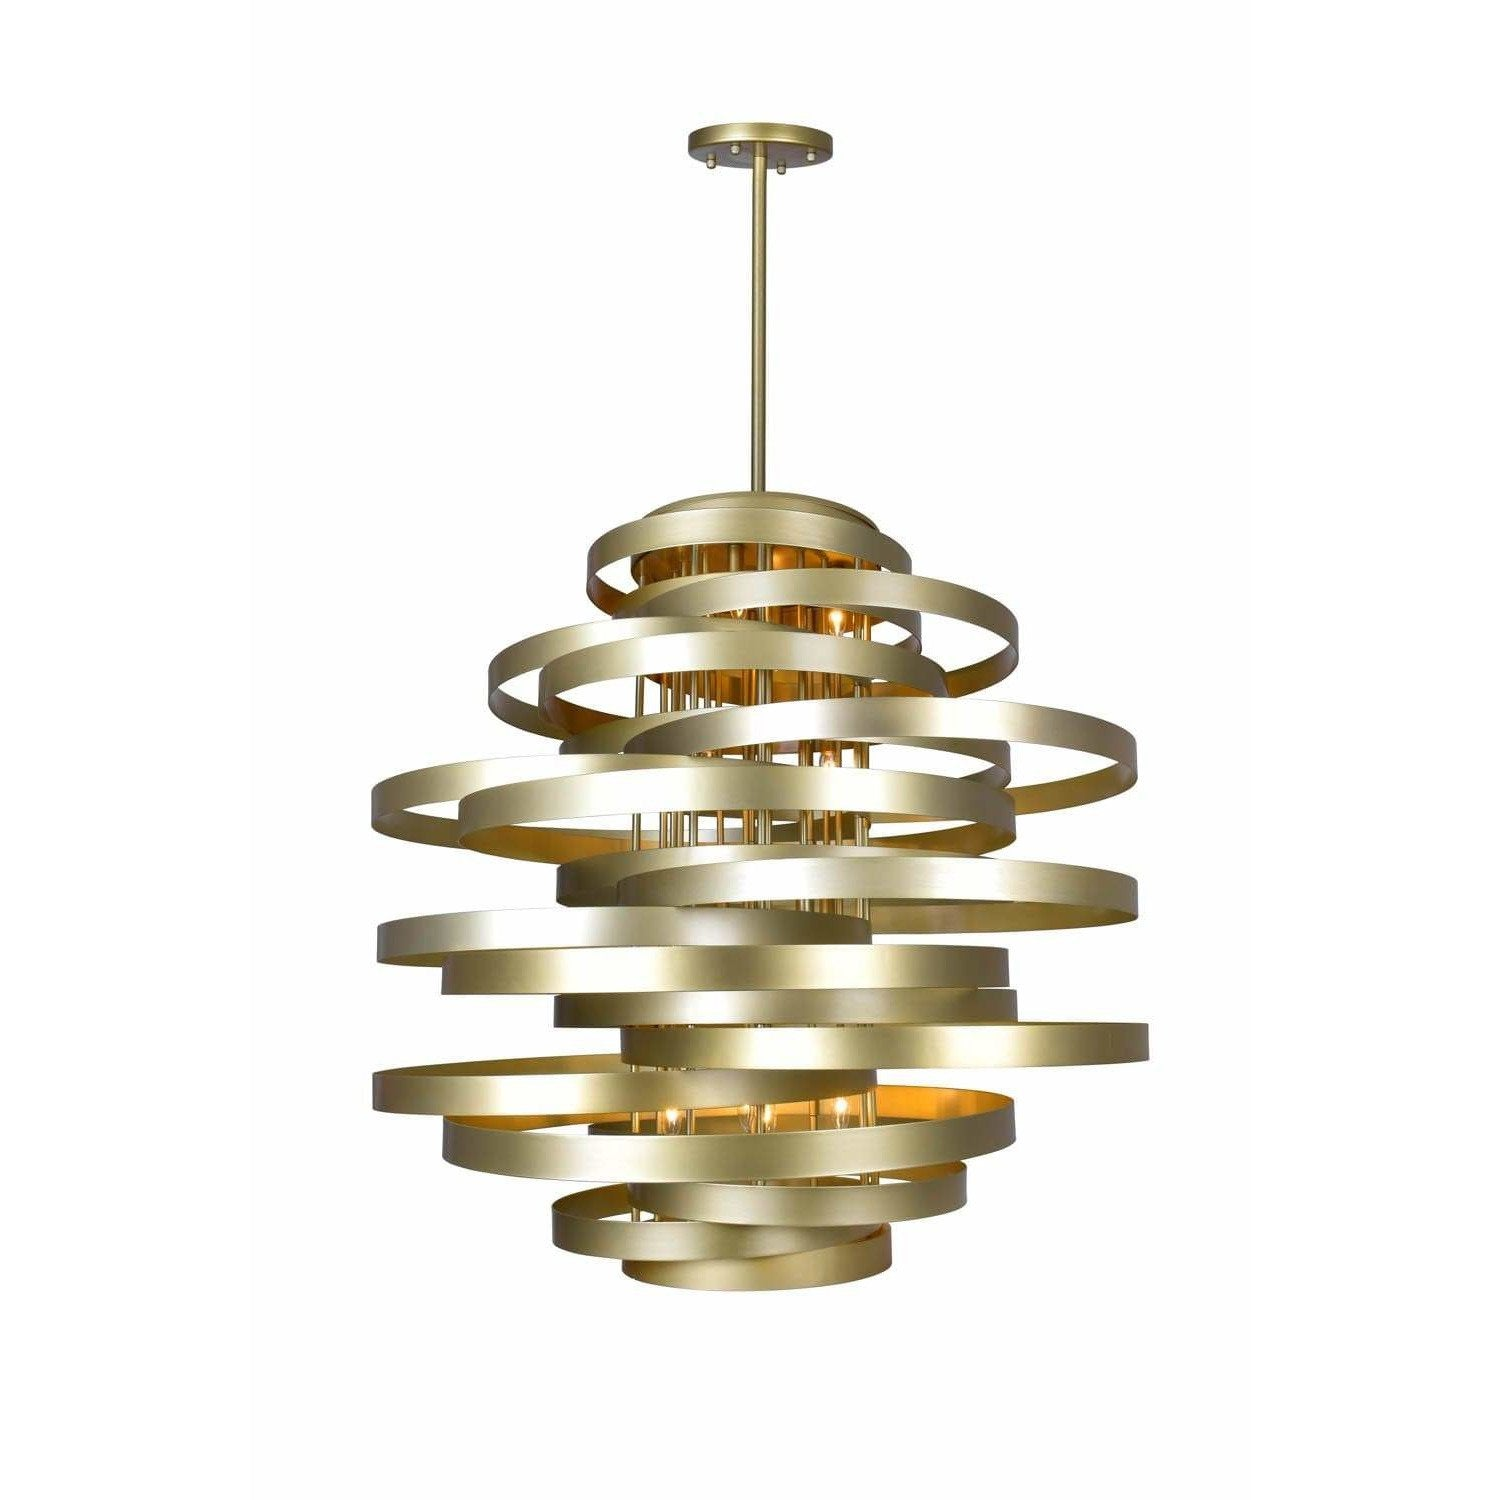 CWI Lighting Chandeliers Gold Leaf Elizabetta 16 Light Chandelier with Gold Leaf Finish by CWI Lighting 1068P45-16-620